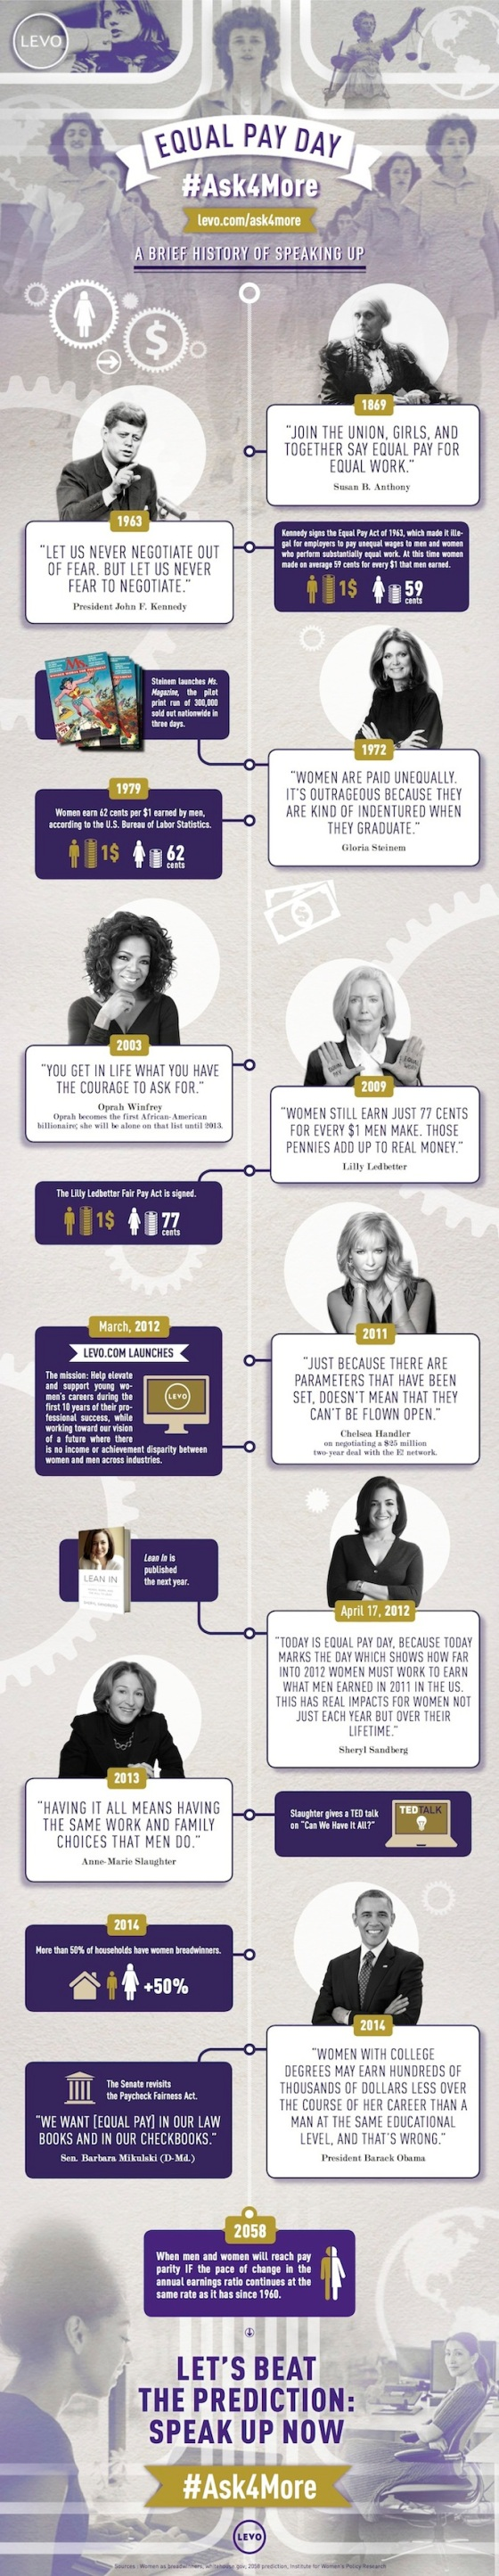 Equal Pay Day Infographic